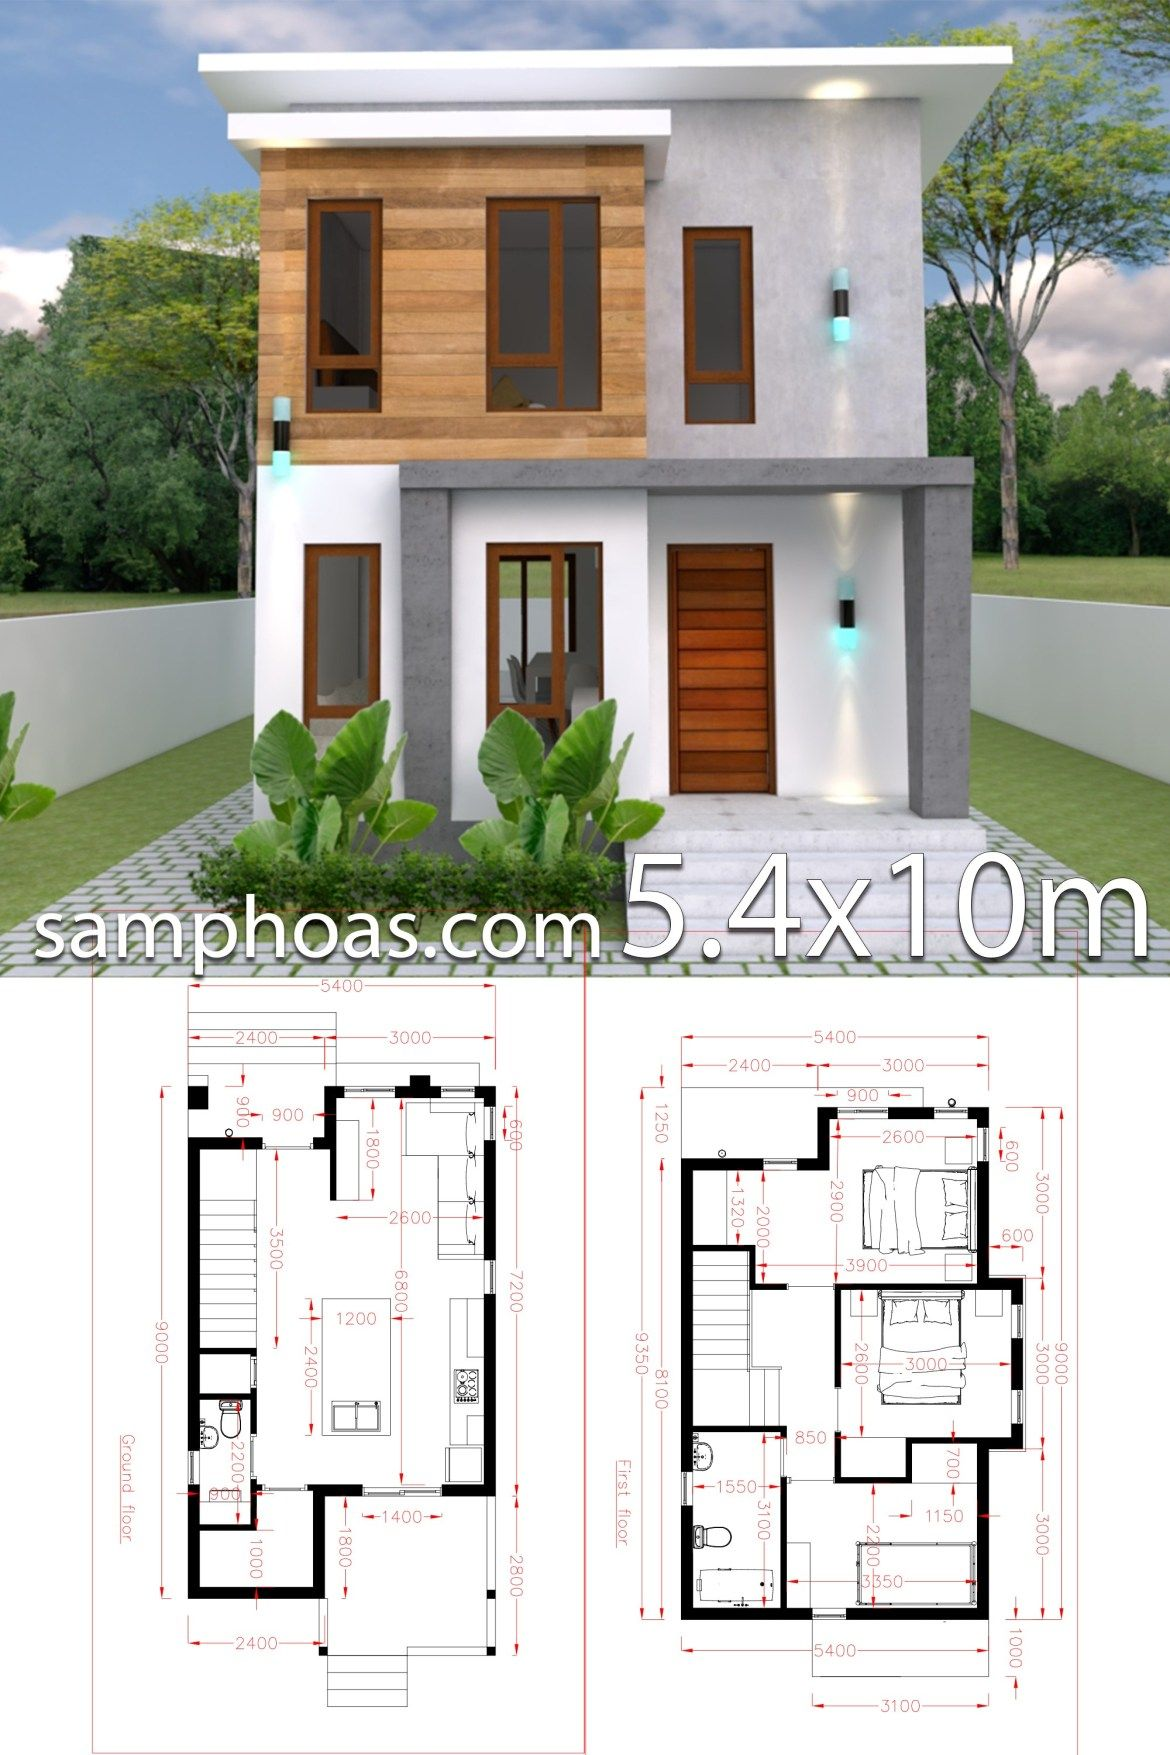 Small Home Design Plan 5 4x10m With 3 Bedroom Modern House